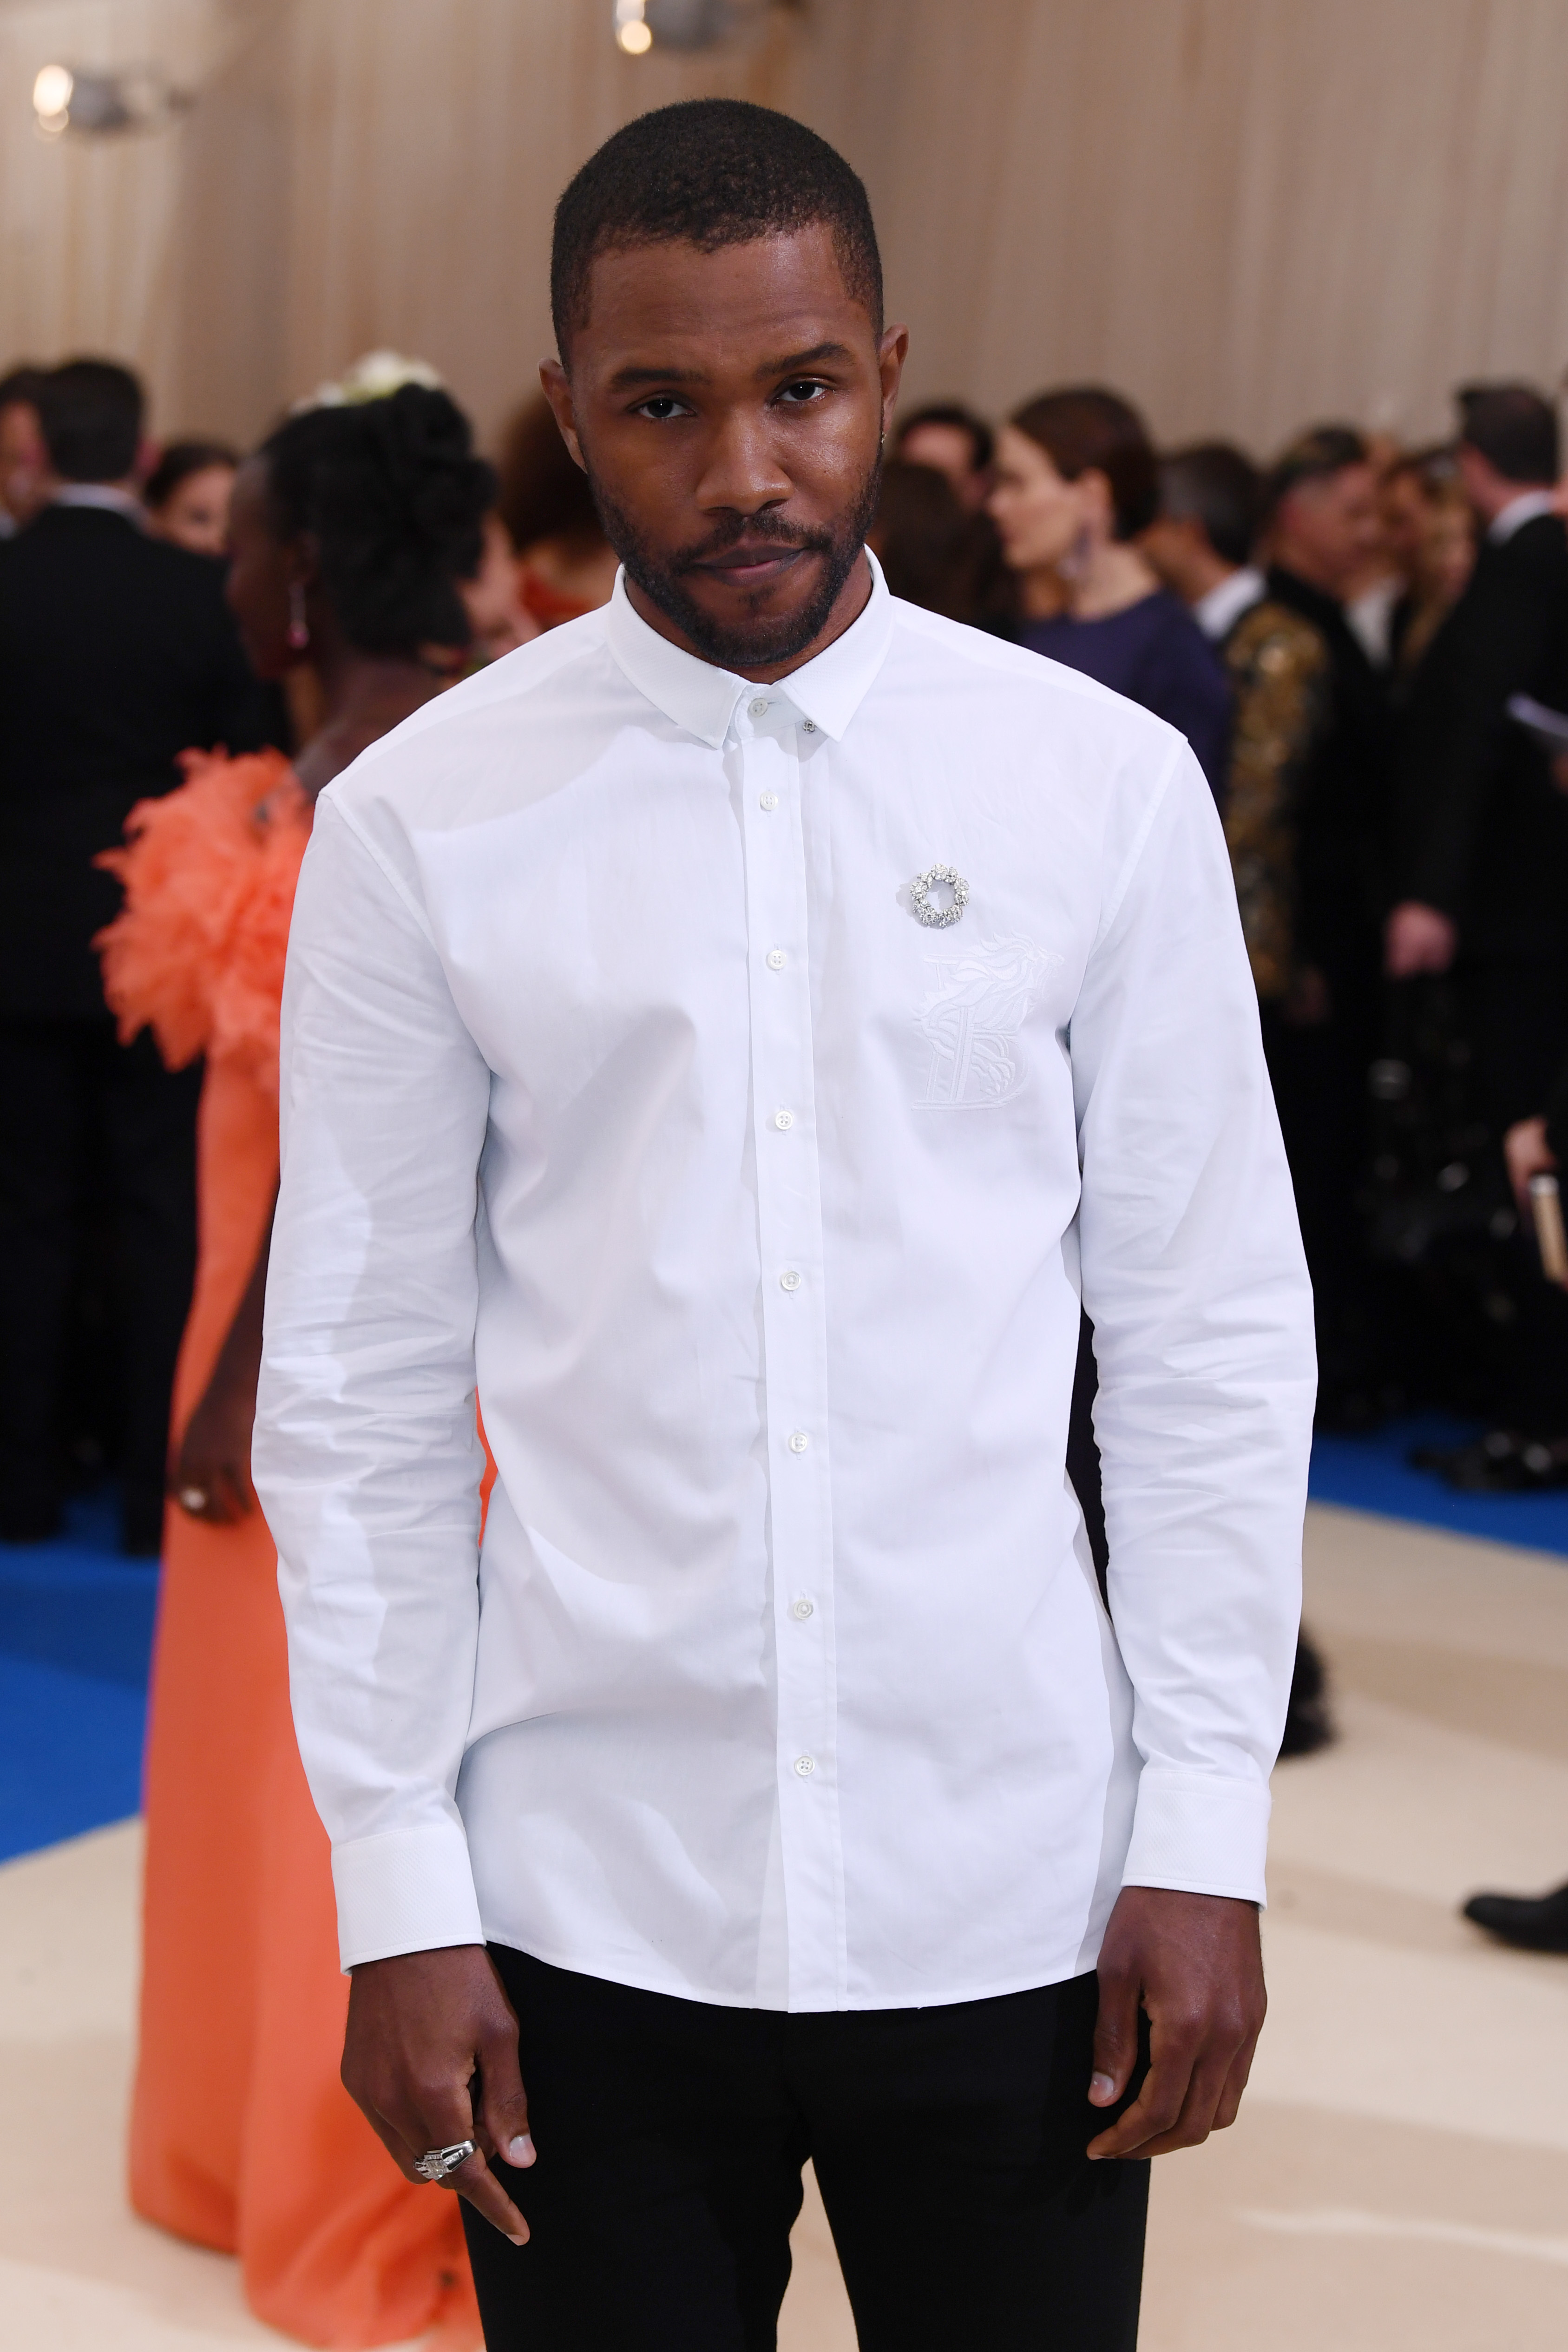 Frank Ocean attends the Met Gala in New York City on May 1, 2017.